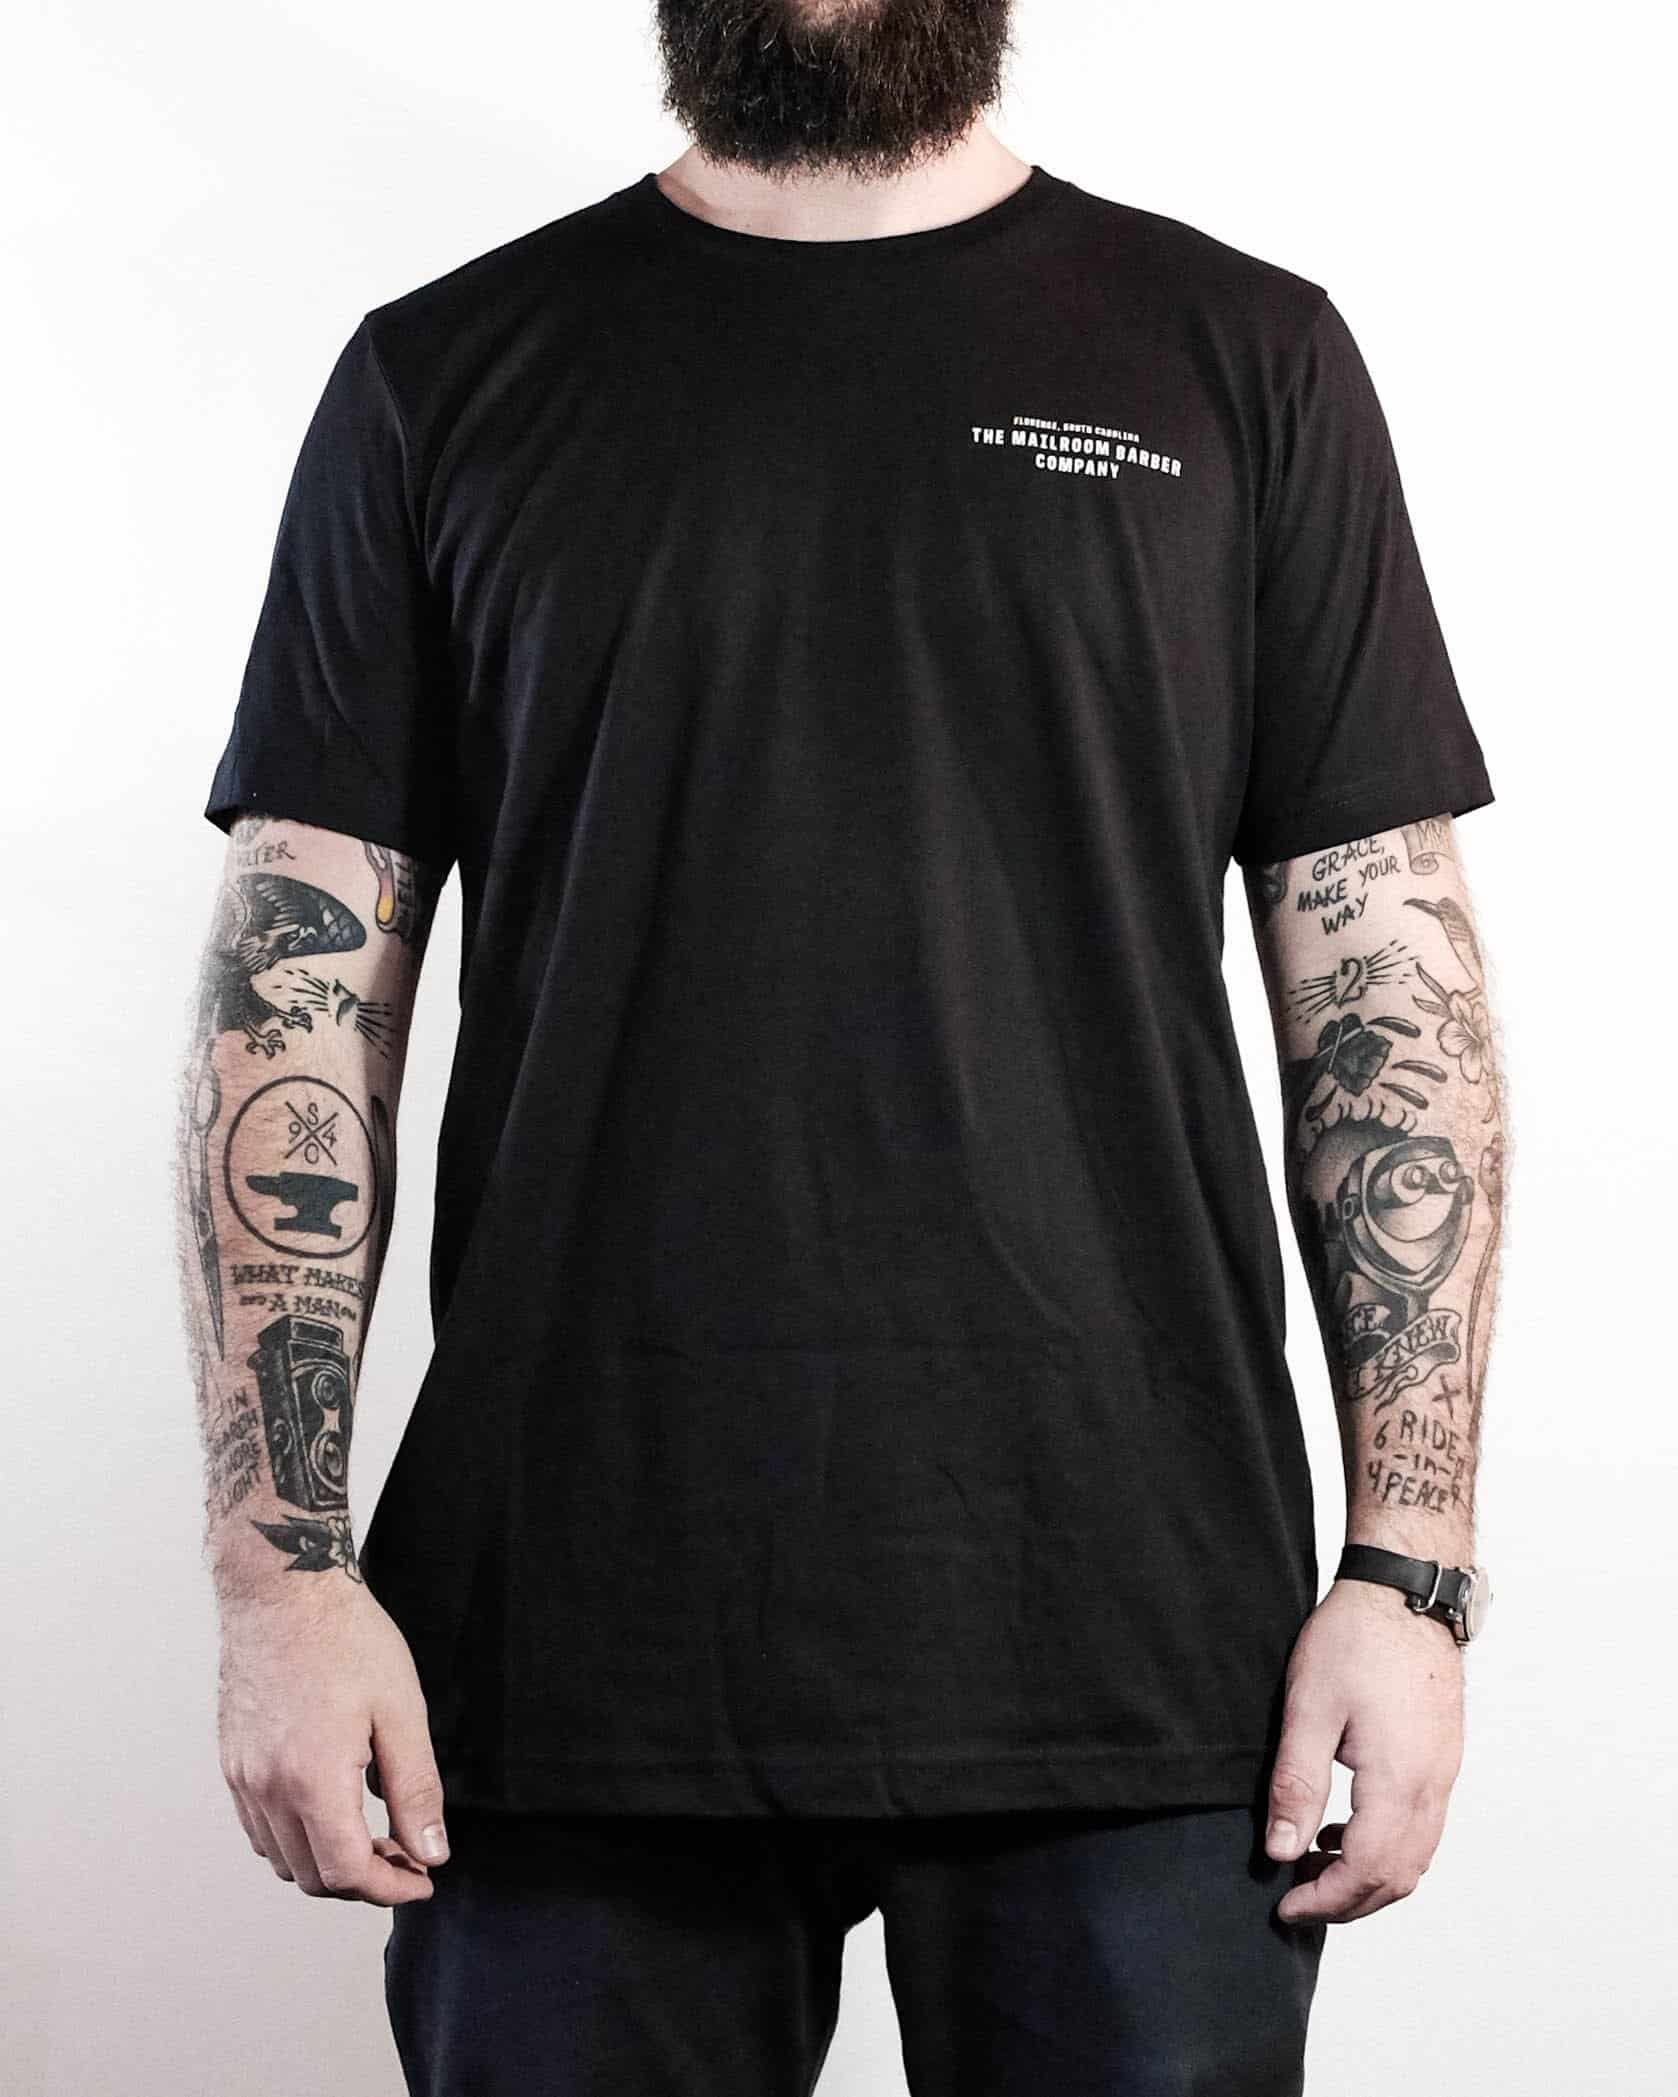 Cutthroat Tee - The Mailroom Barber Co